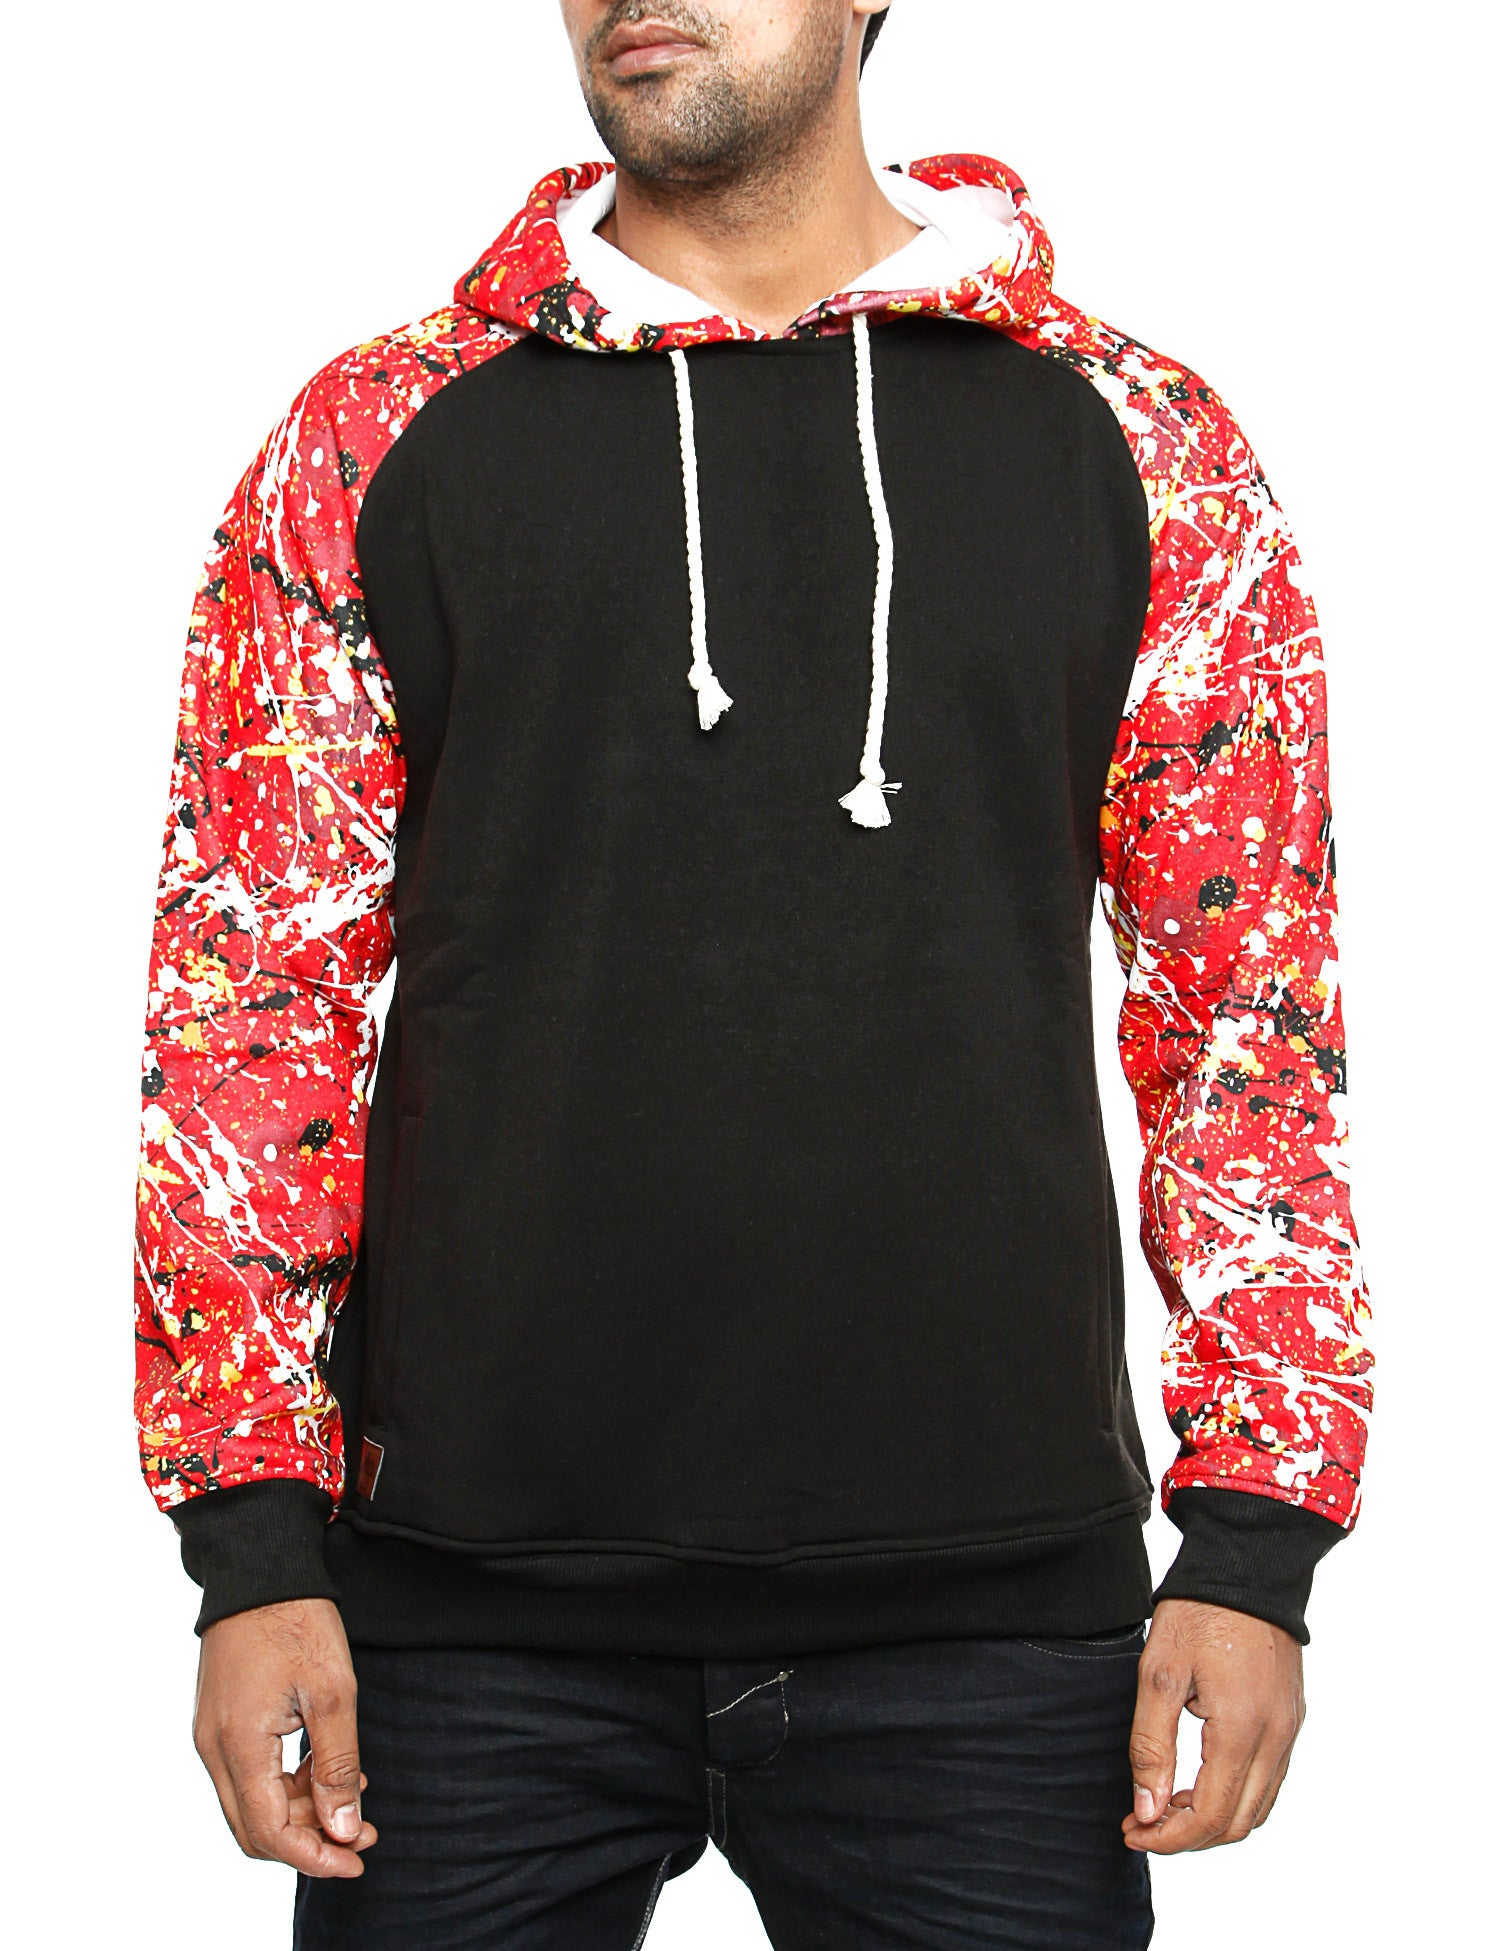 Imperious Raglan Hoody HS548 Black